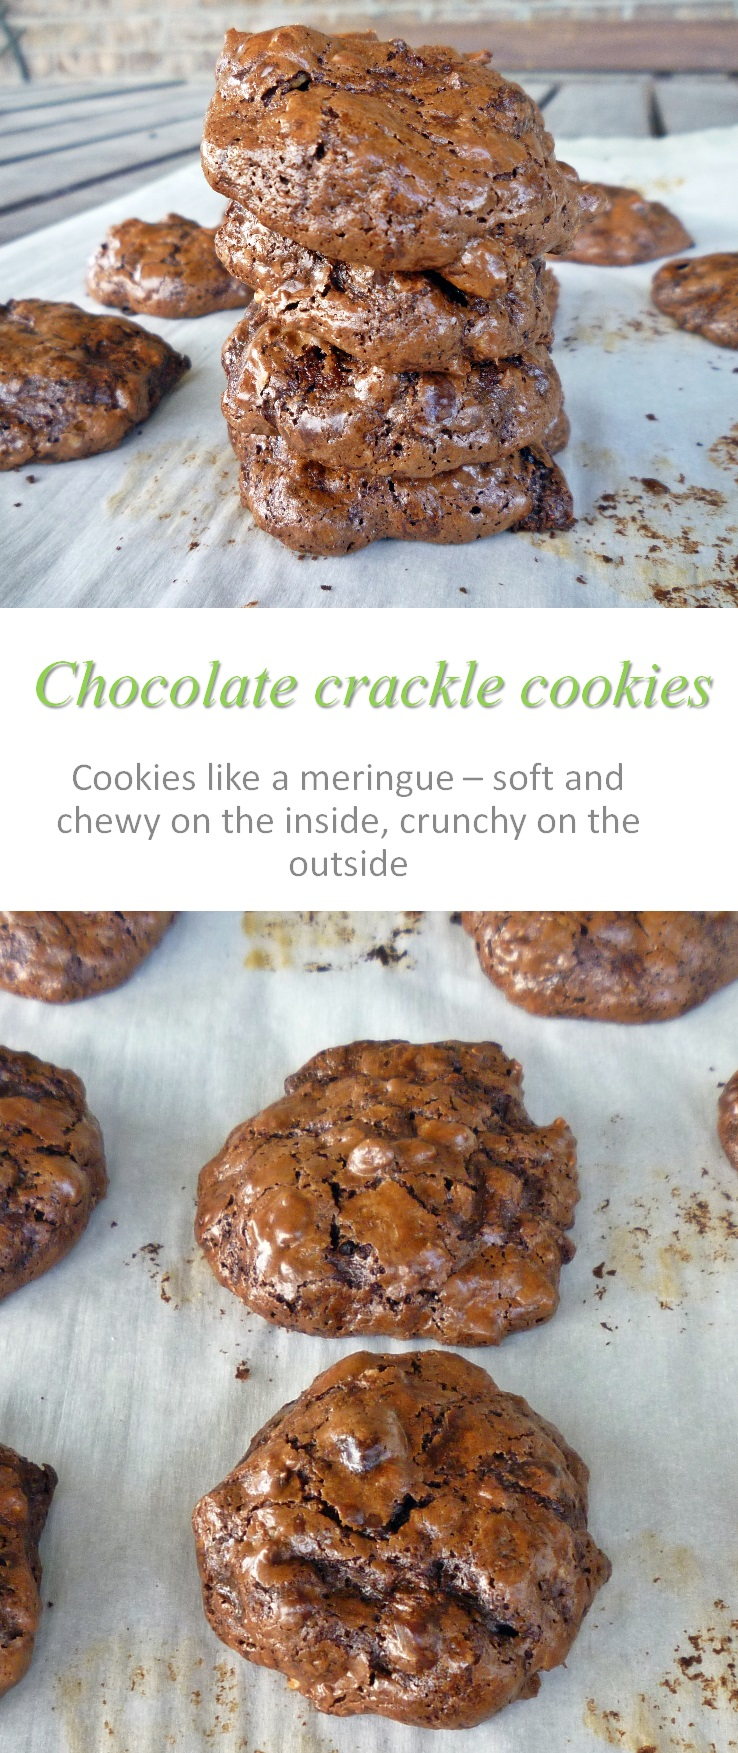 These chocolate crackle cookies are so yummy - crunchy on the outside, chewy on the inside. Really easy to make, gluten and dairy-free as well! #cookies